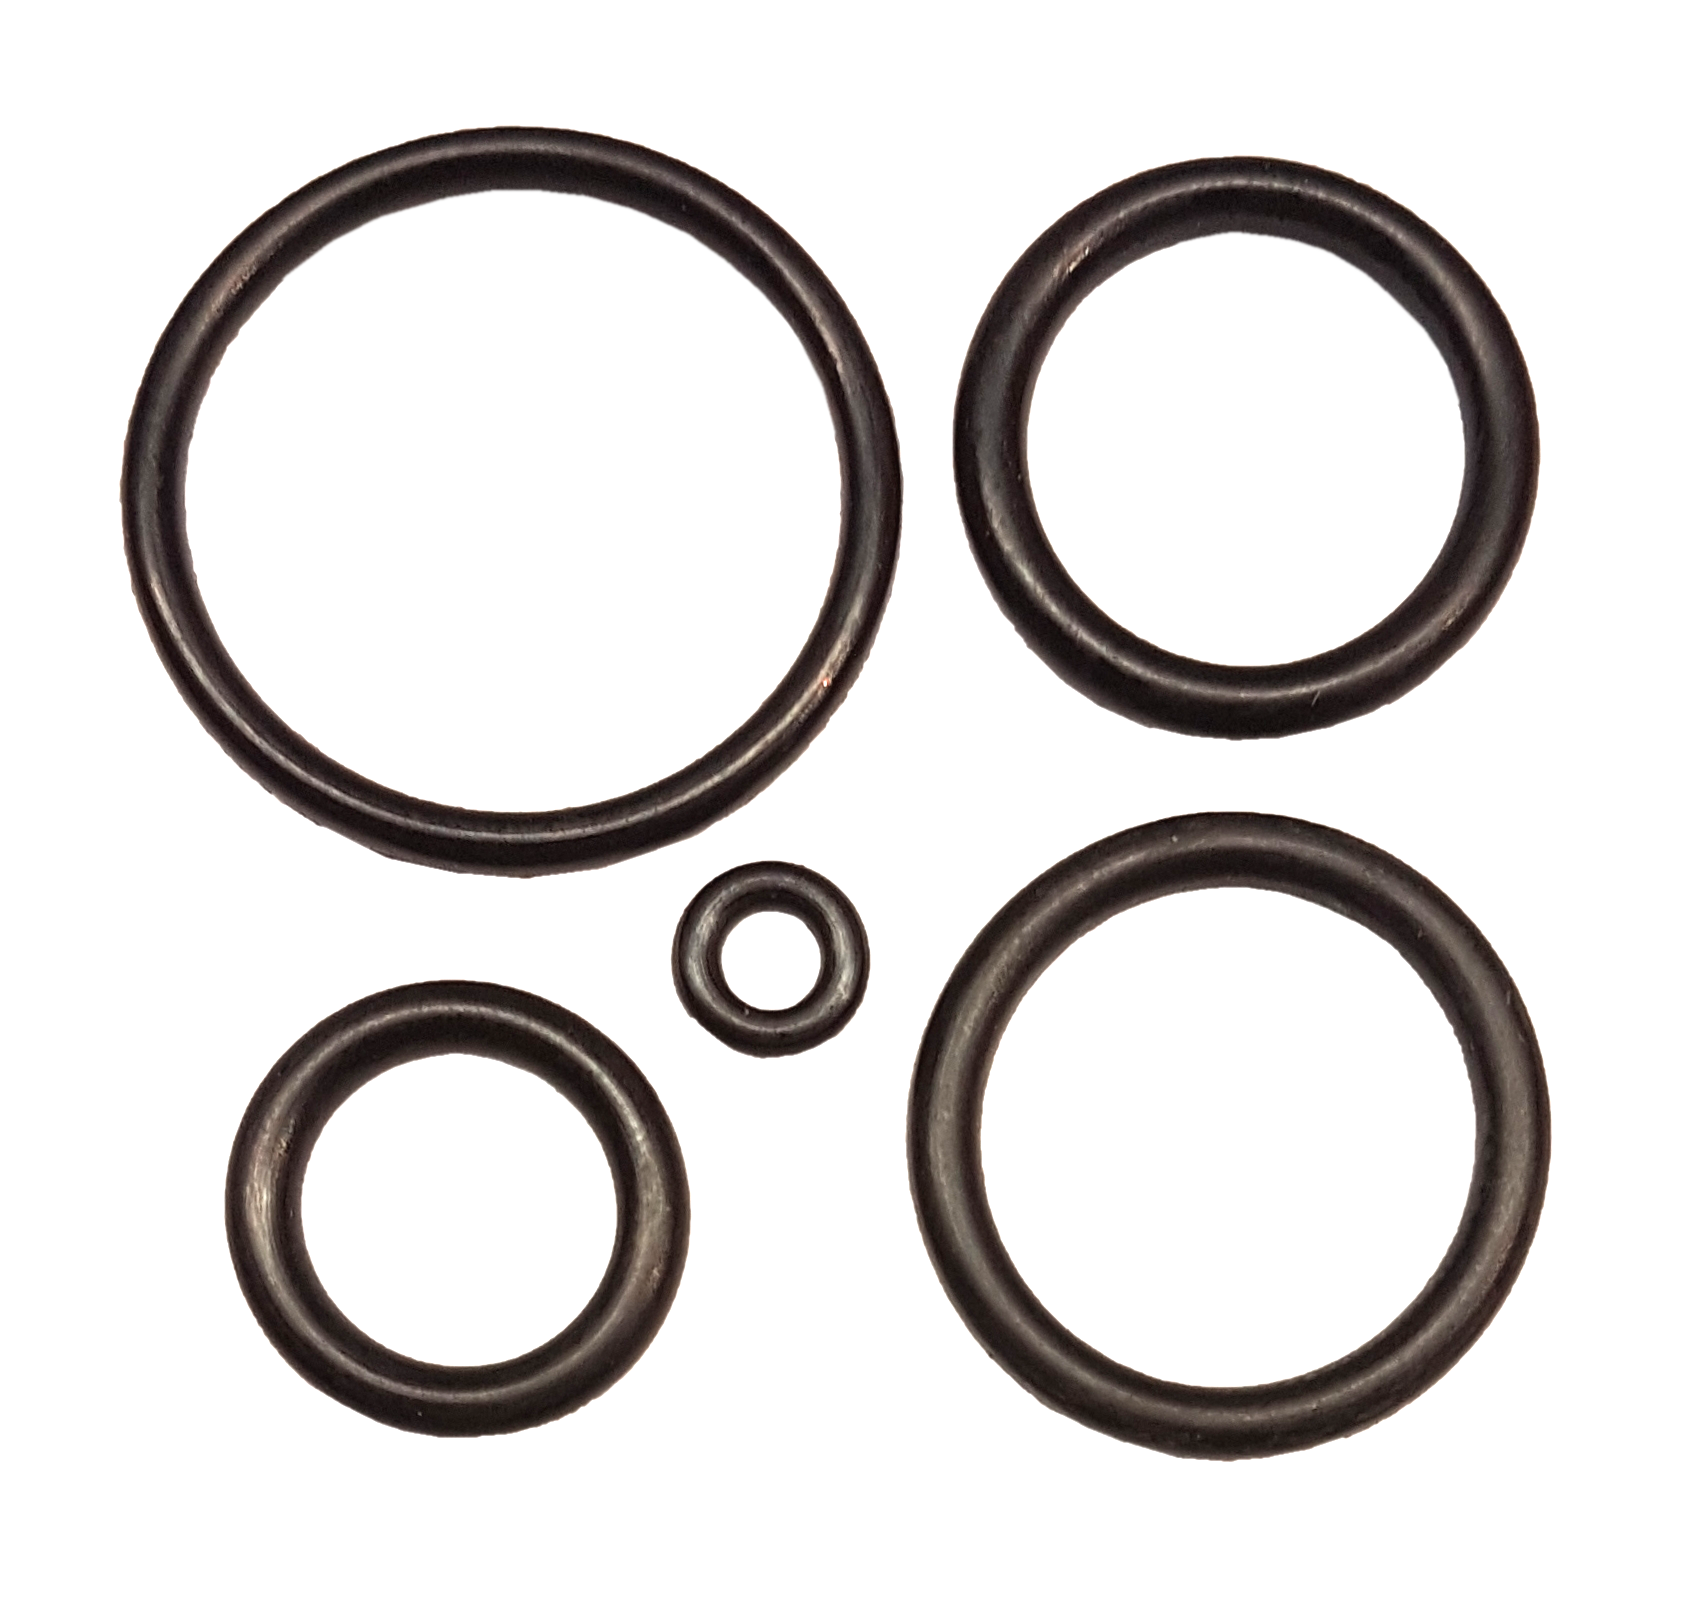 Tench Regulator - Service Kit